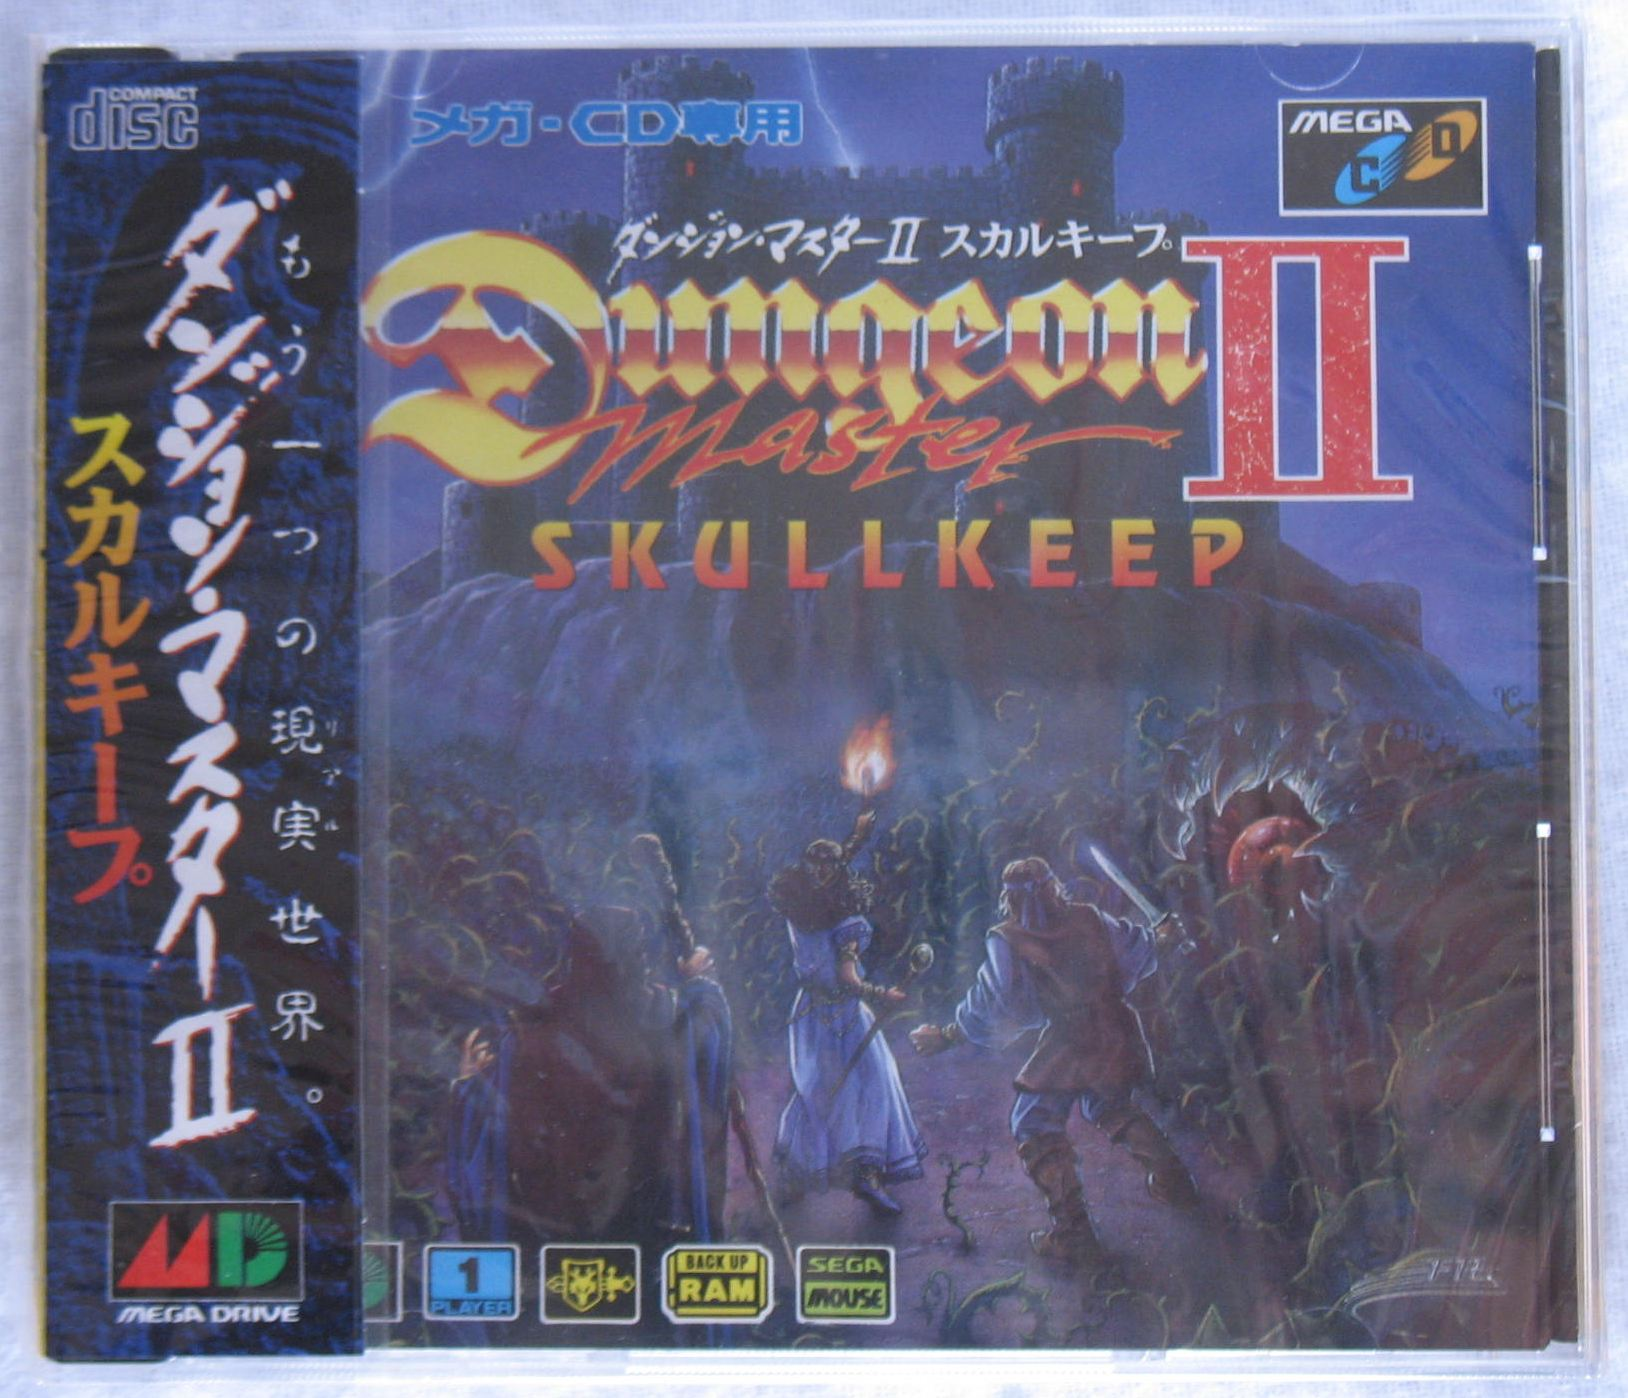 Game - Dungeon Master II - JP - Mega CD - Sealed Box - Front - Scan